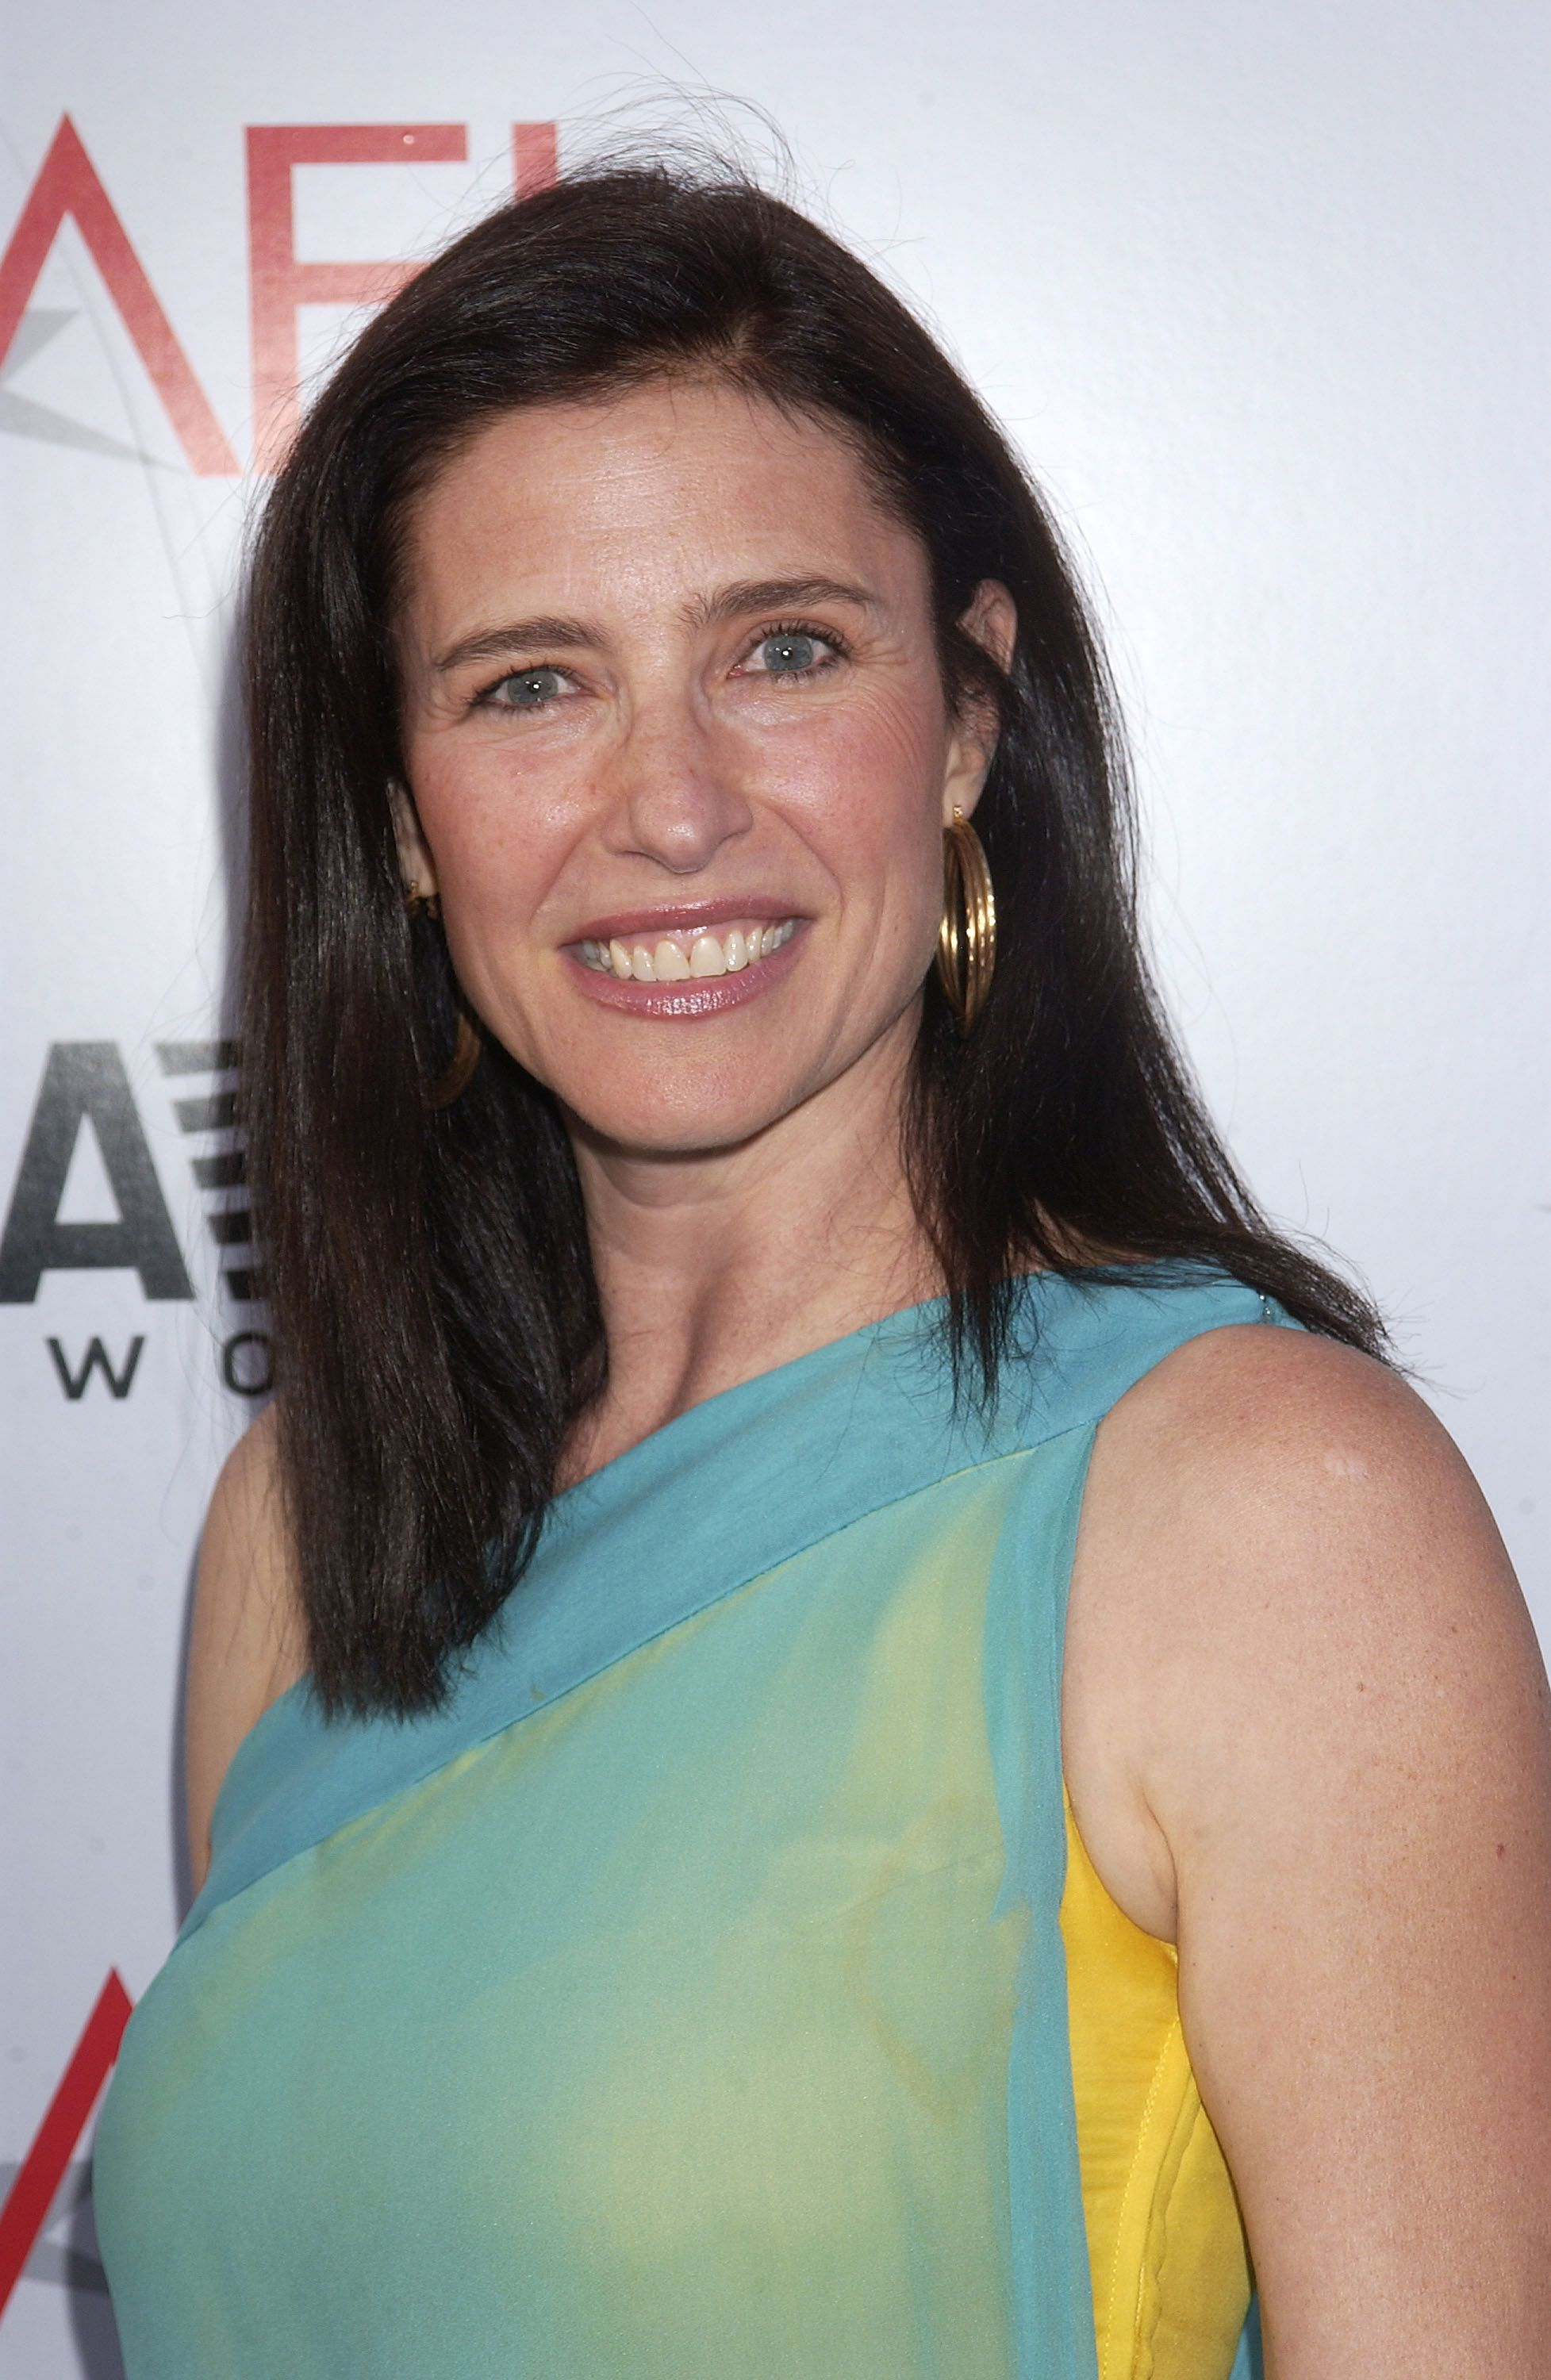 mimi rogers young